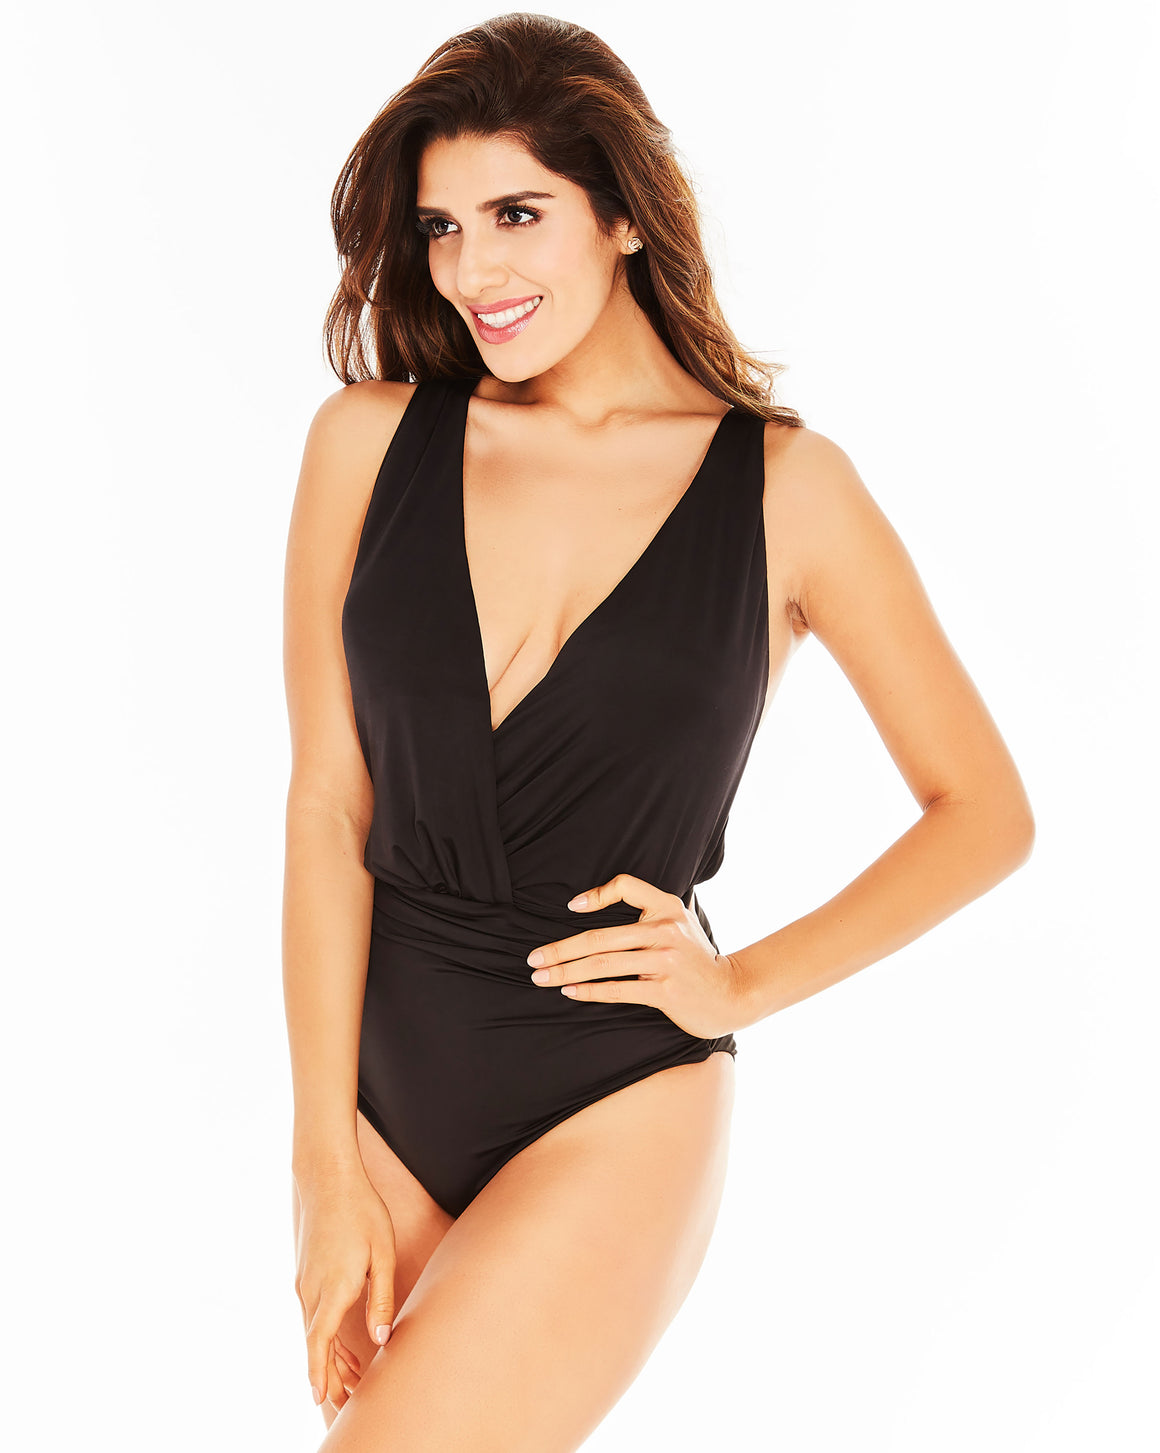 Olivia One Piece Black Sexy Swimwear Bikini Flattering One piece